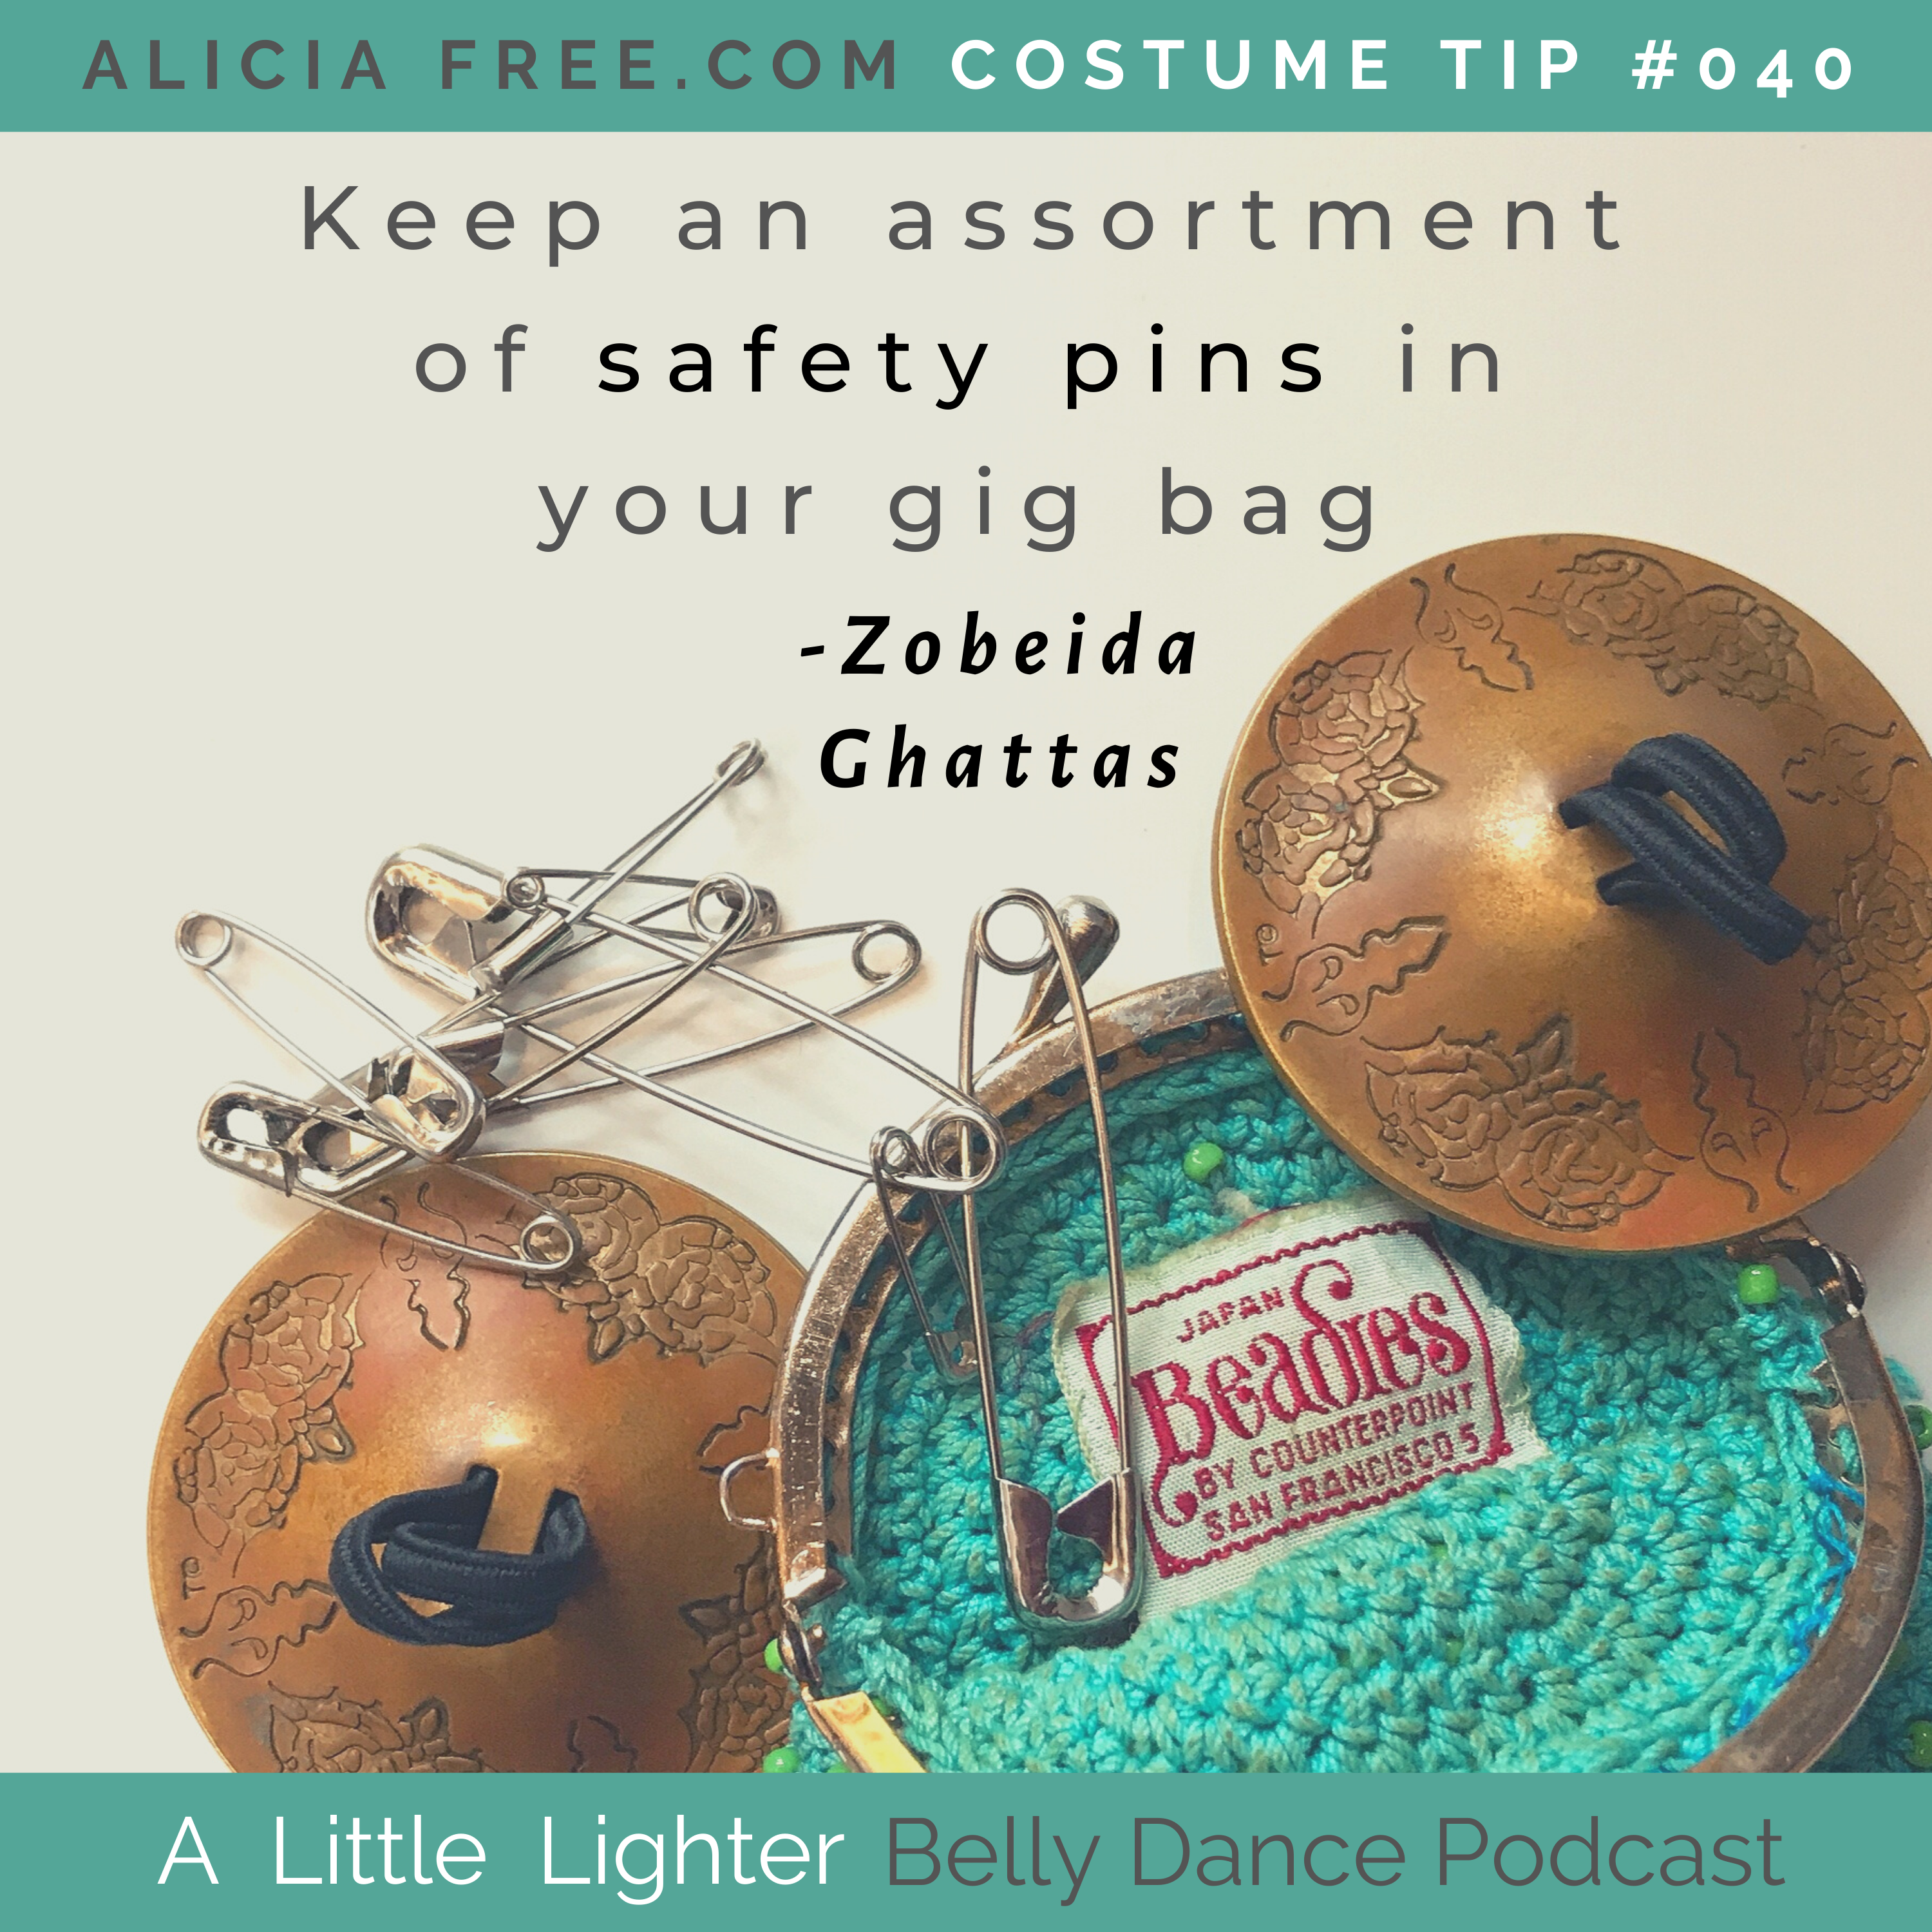 Belly Dance Podcast 040 Costume Tip